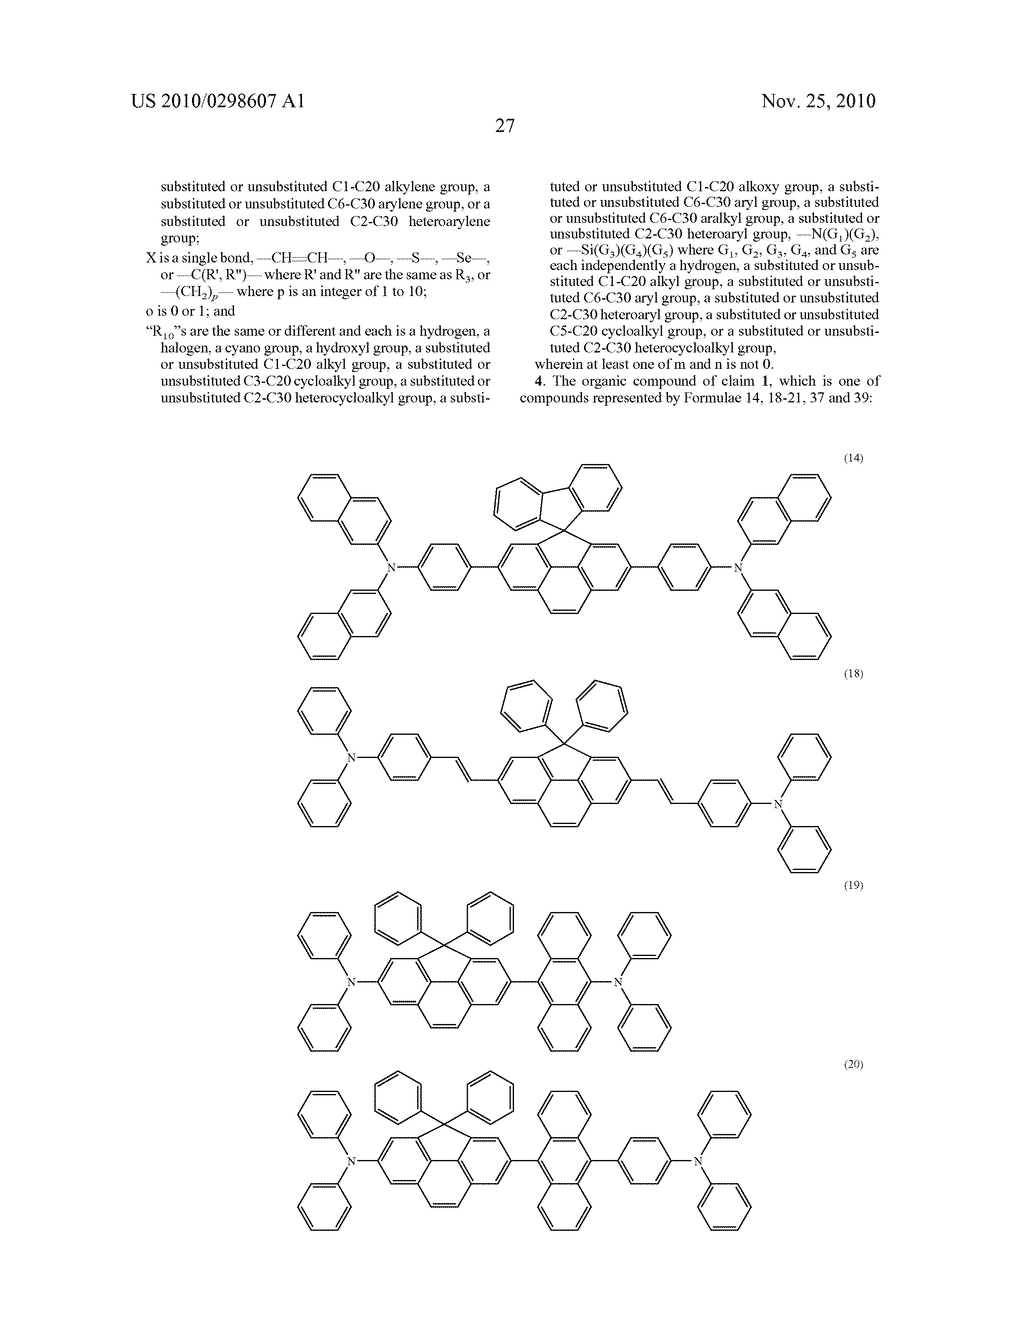 CYCLOPENTAPHENANTHRENE-BASED COMPOUND AND ORGANIC ELECTROLUMINESCENT DEVICE USING THE SAME - diagram, schematic, and image 31